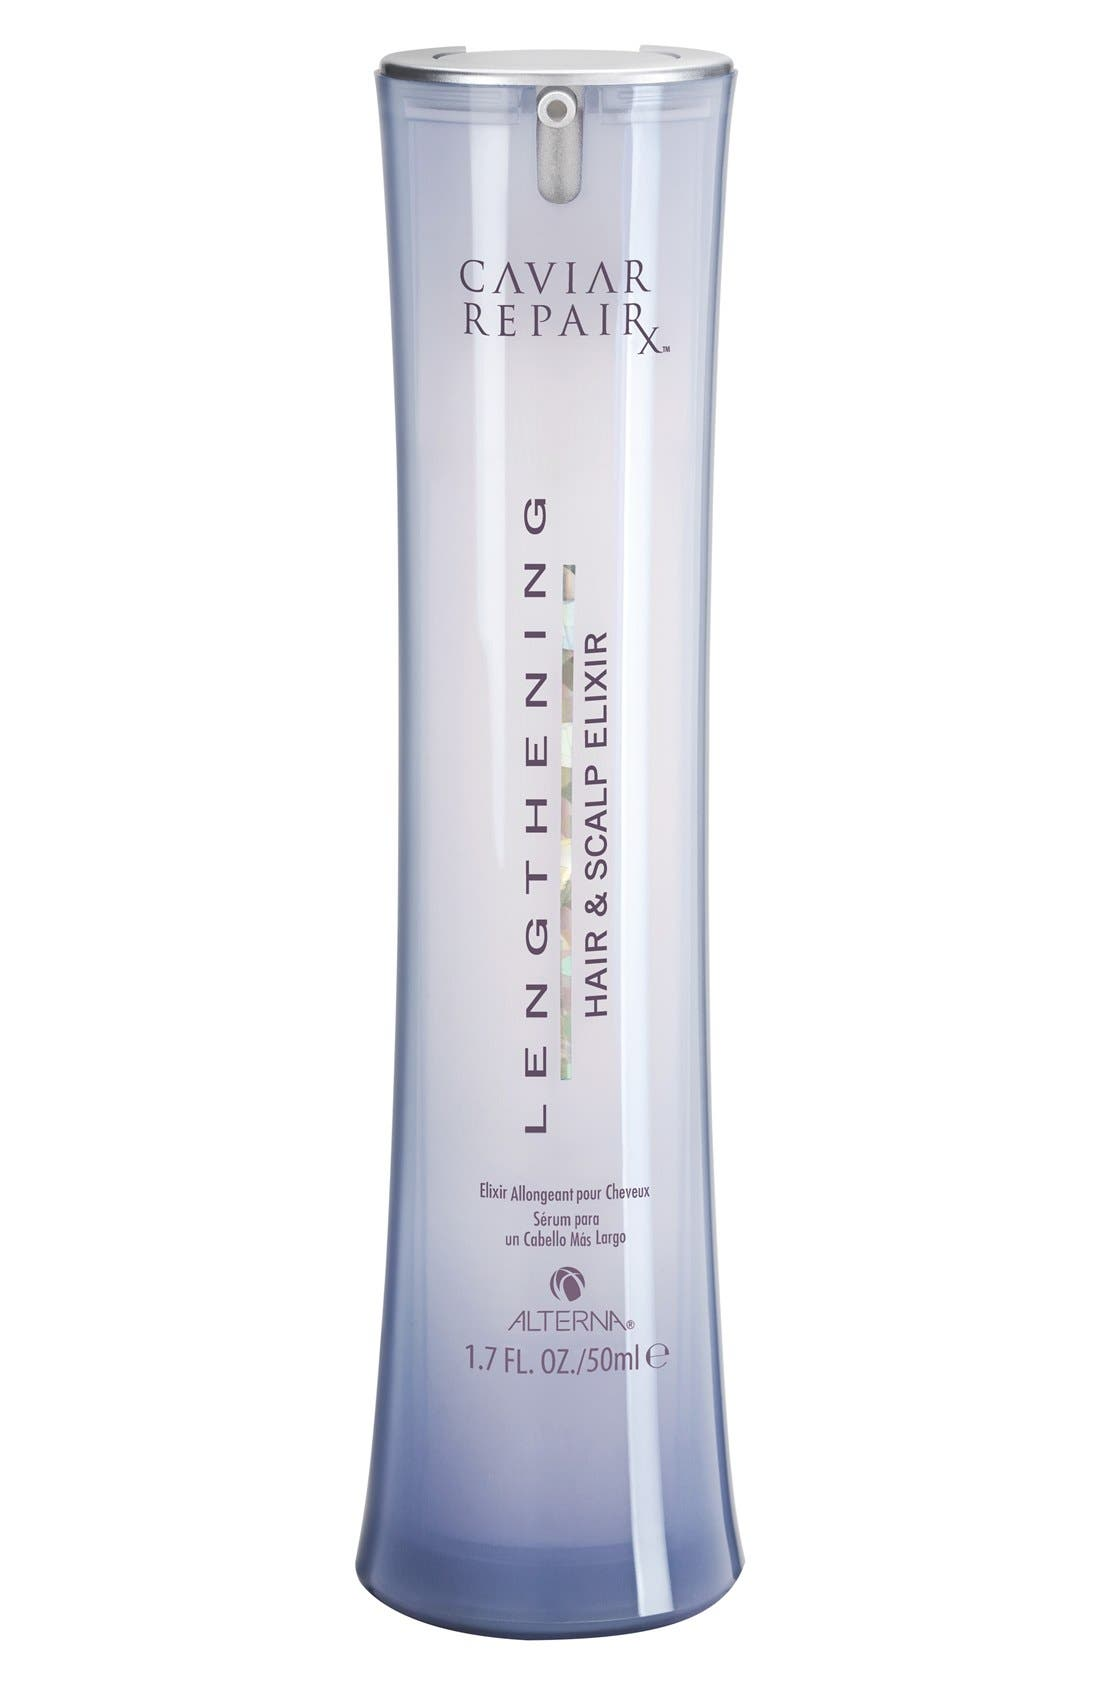 ALTERNA® Caviar Repair Rx Lengthening Hair & Scalp Elixir